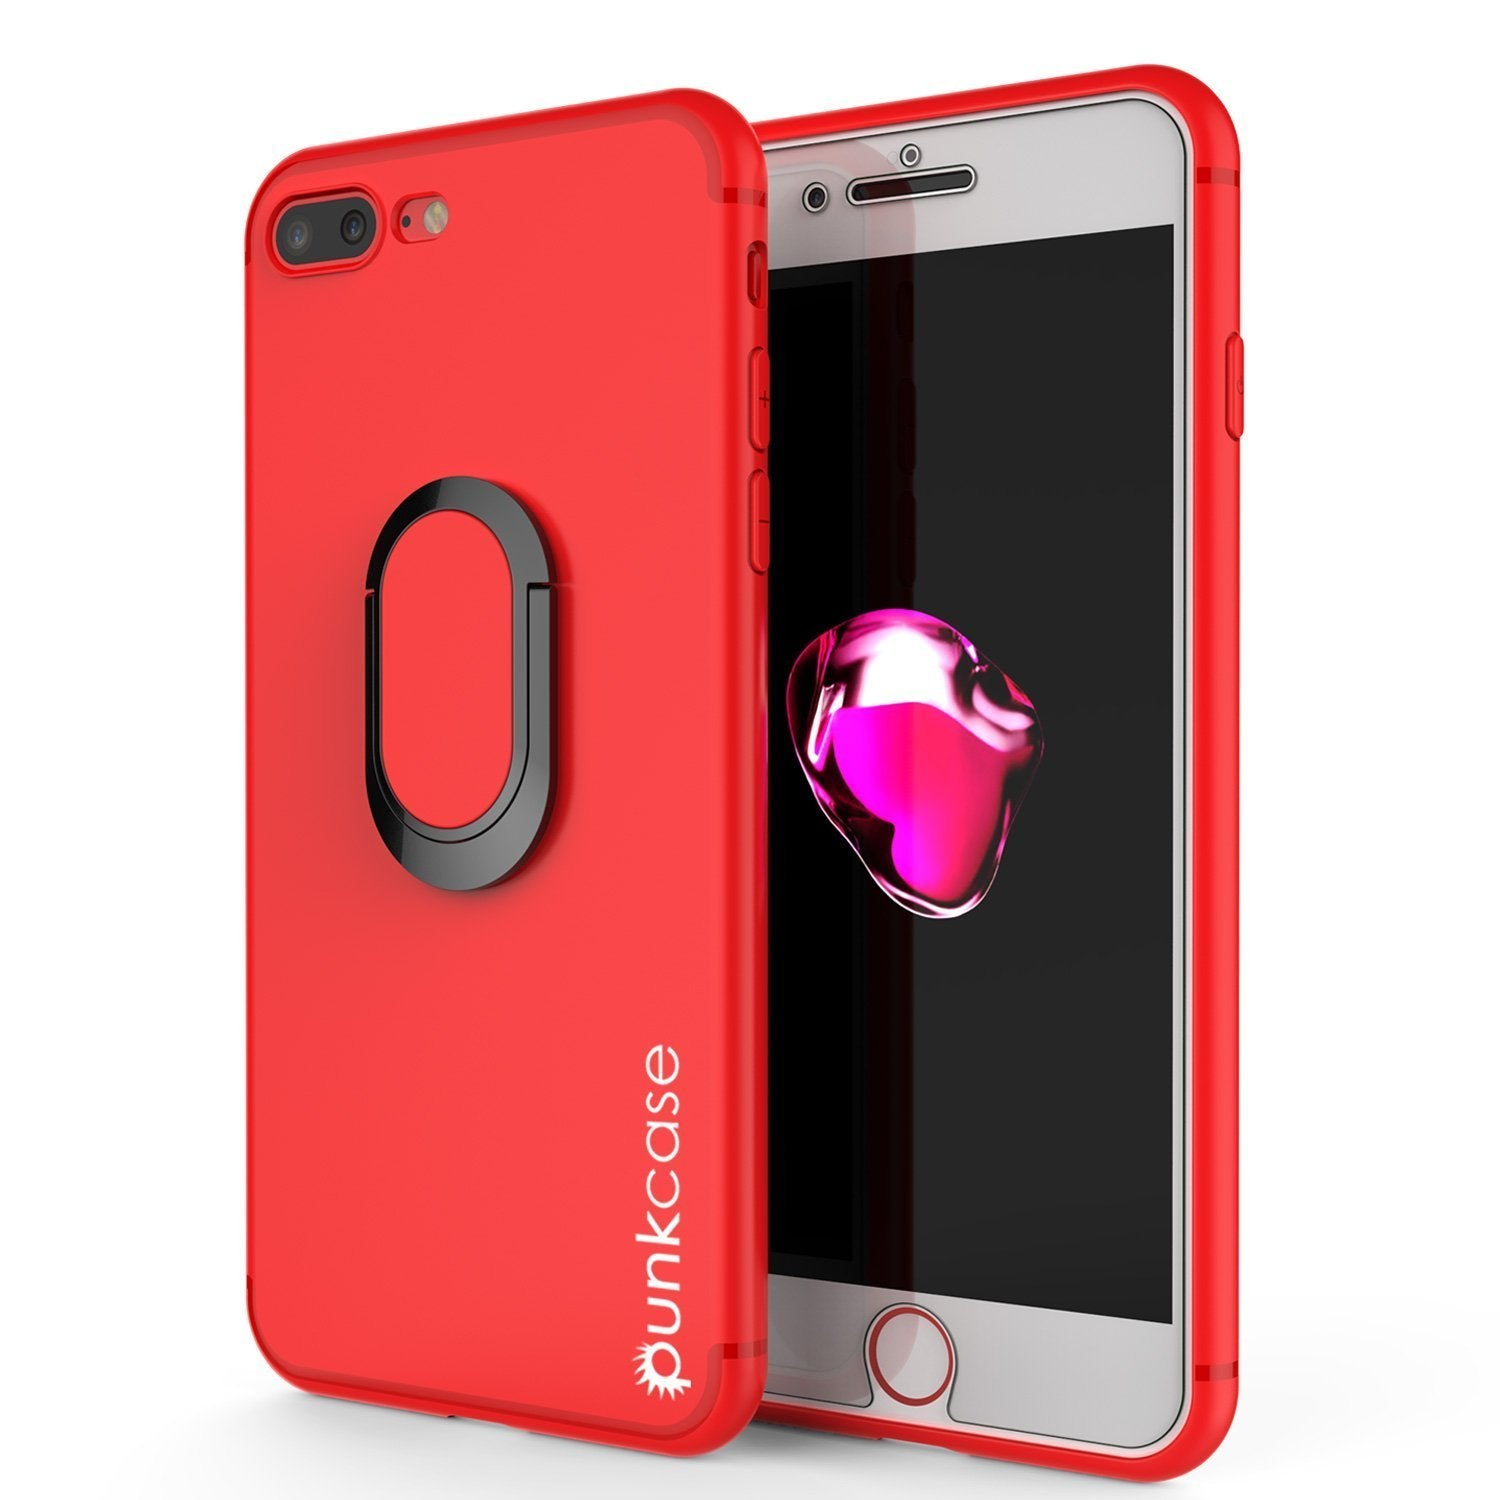 iPhone 8 PLUS Case, Punkcase Magnetix Protective TPU Cover W/ Kickstand, Tempered Glass Screen Protector [Red]